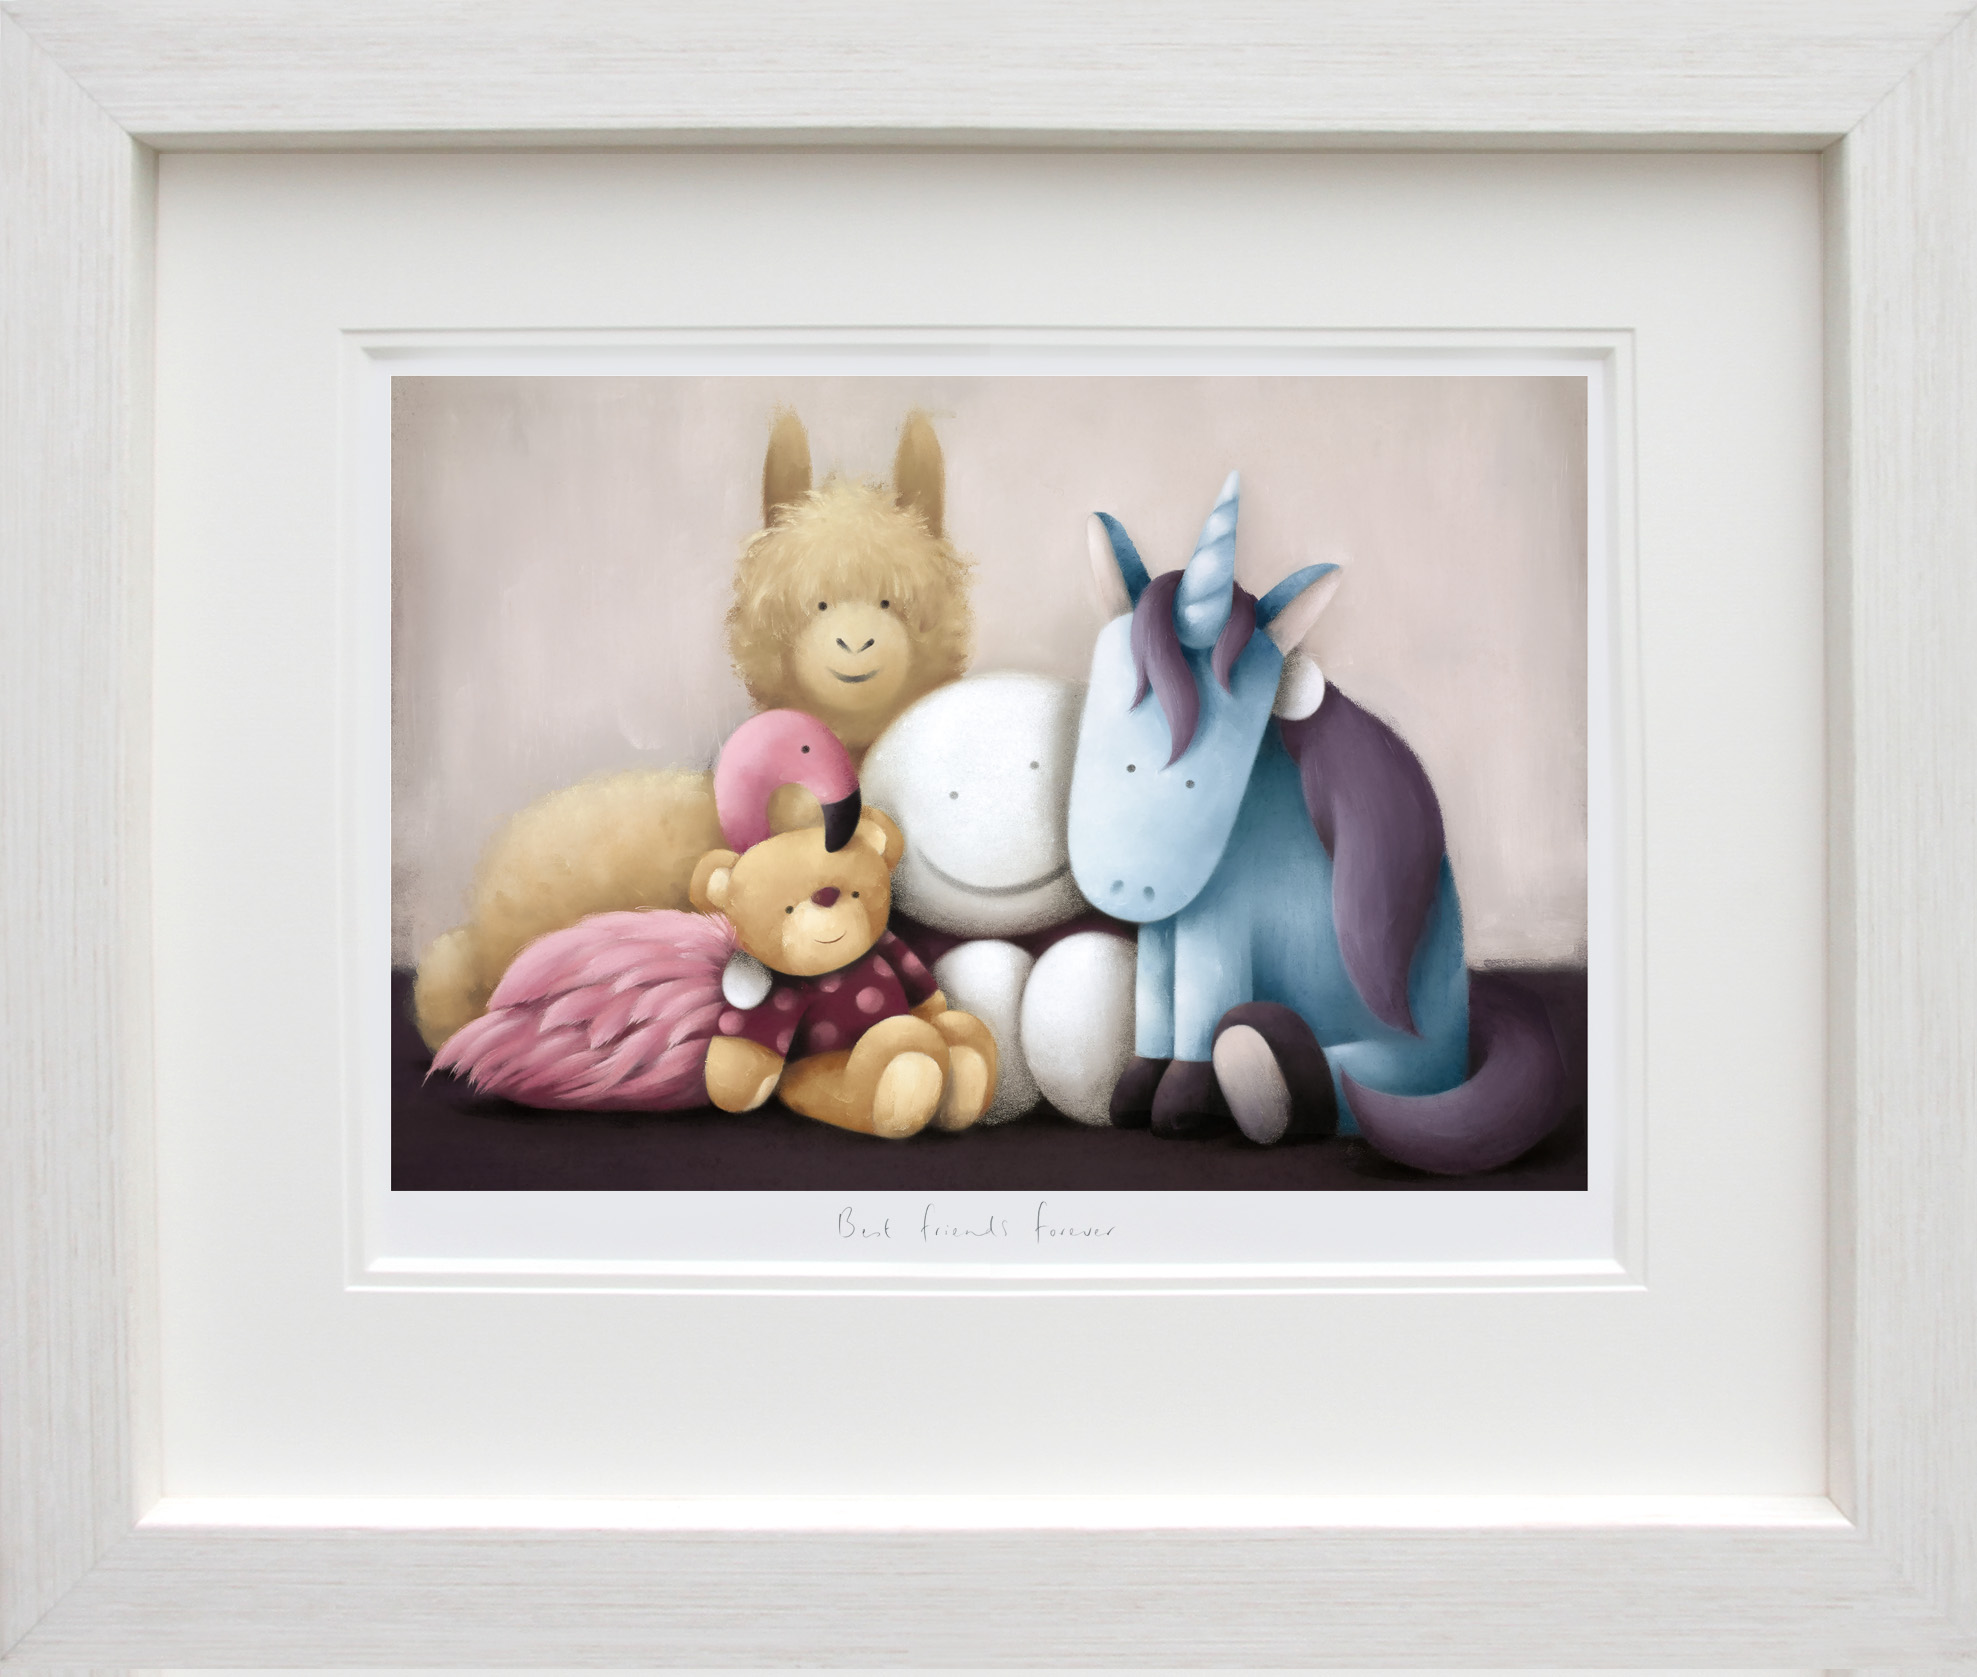 Best Friends Forever - Limited Edition Print By Doug Hyde